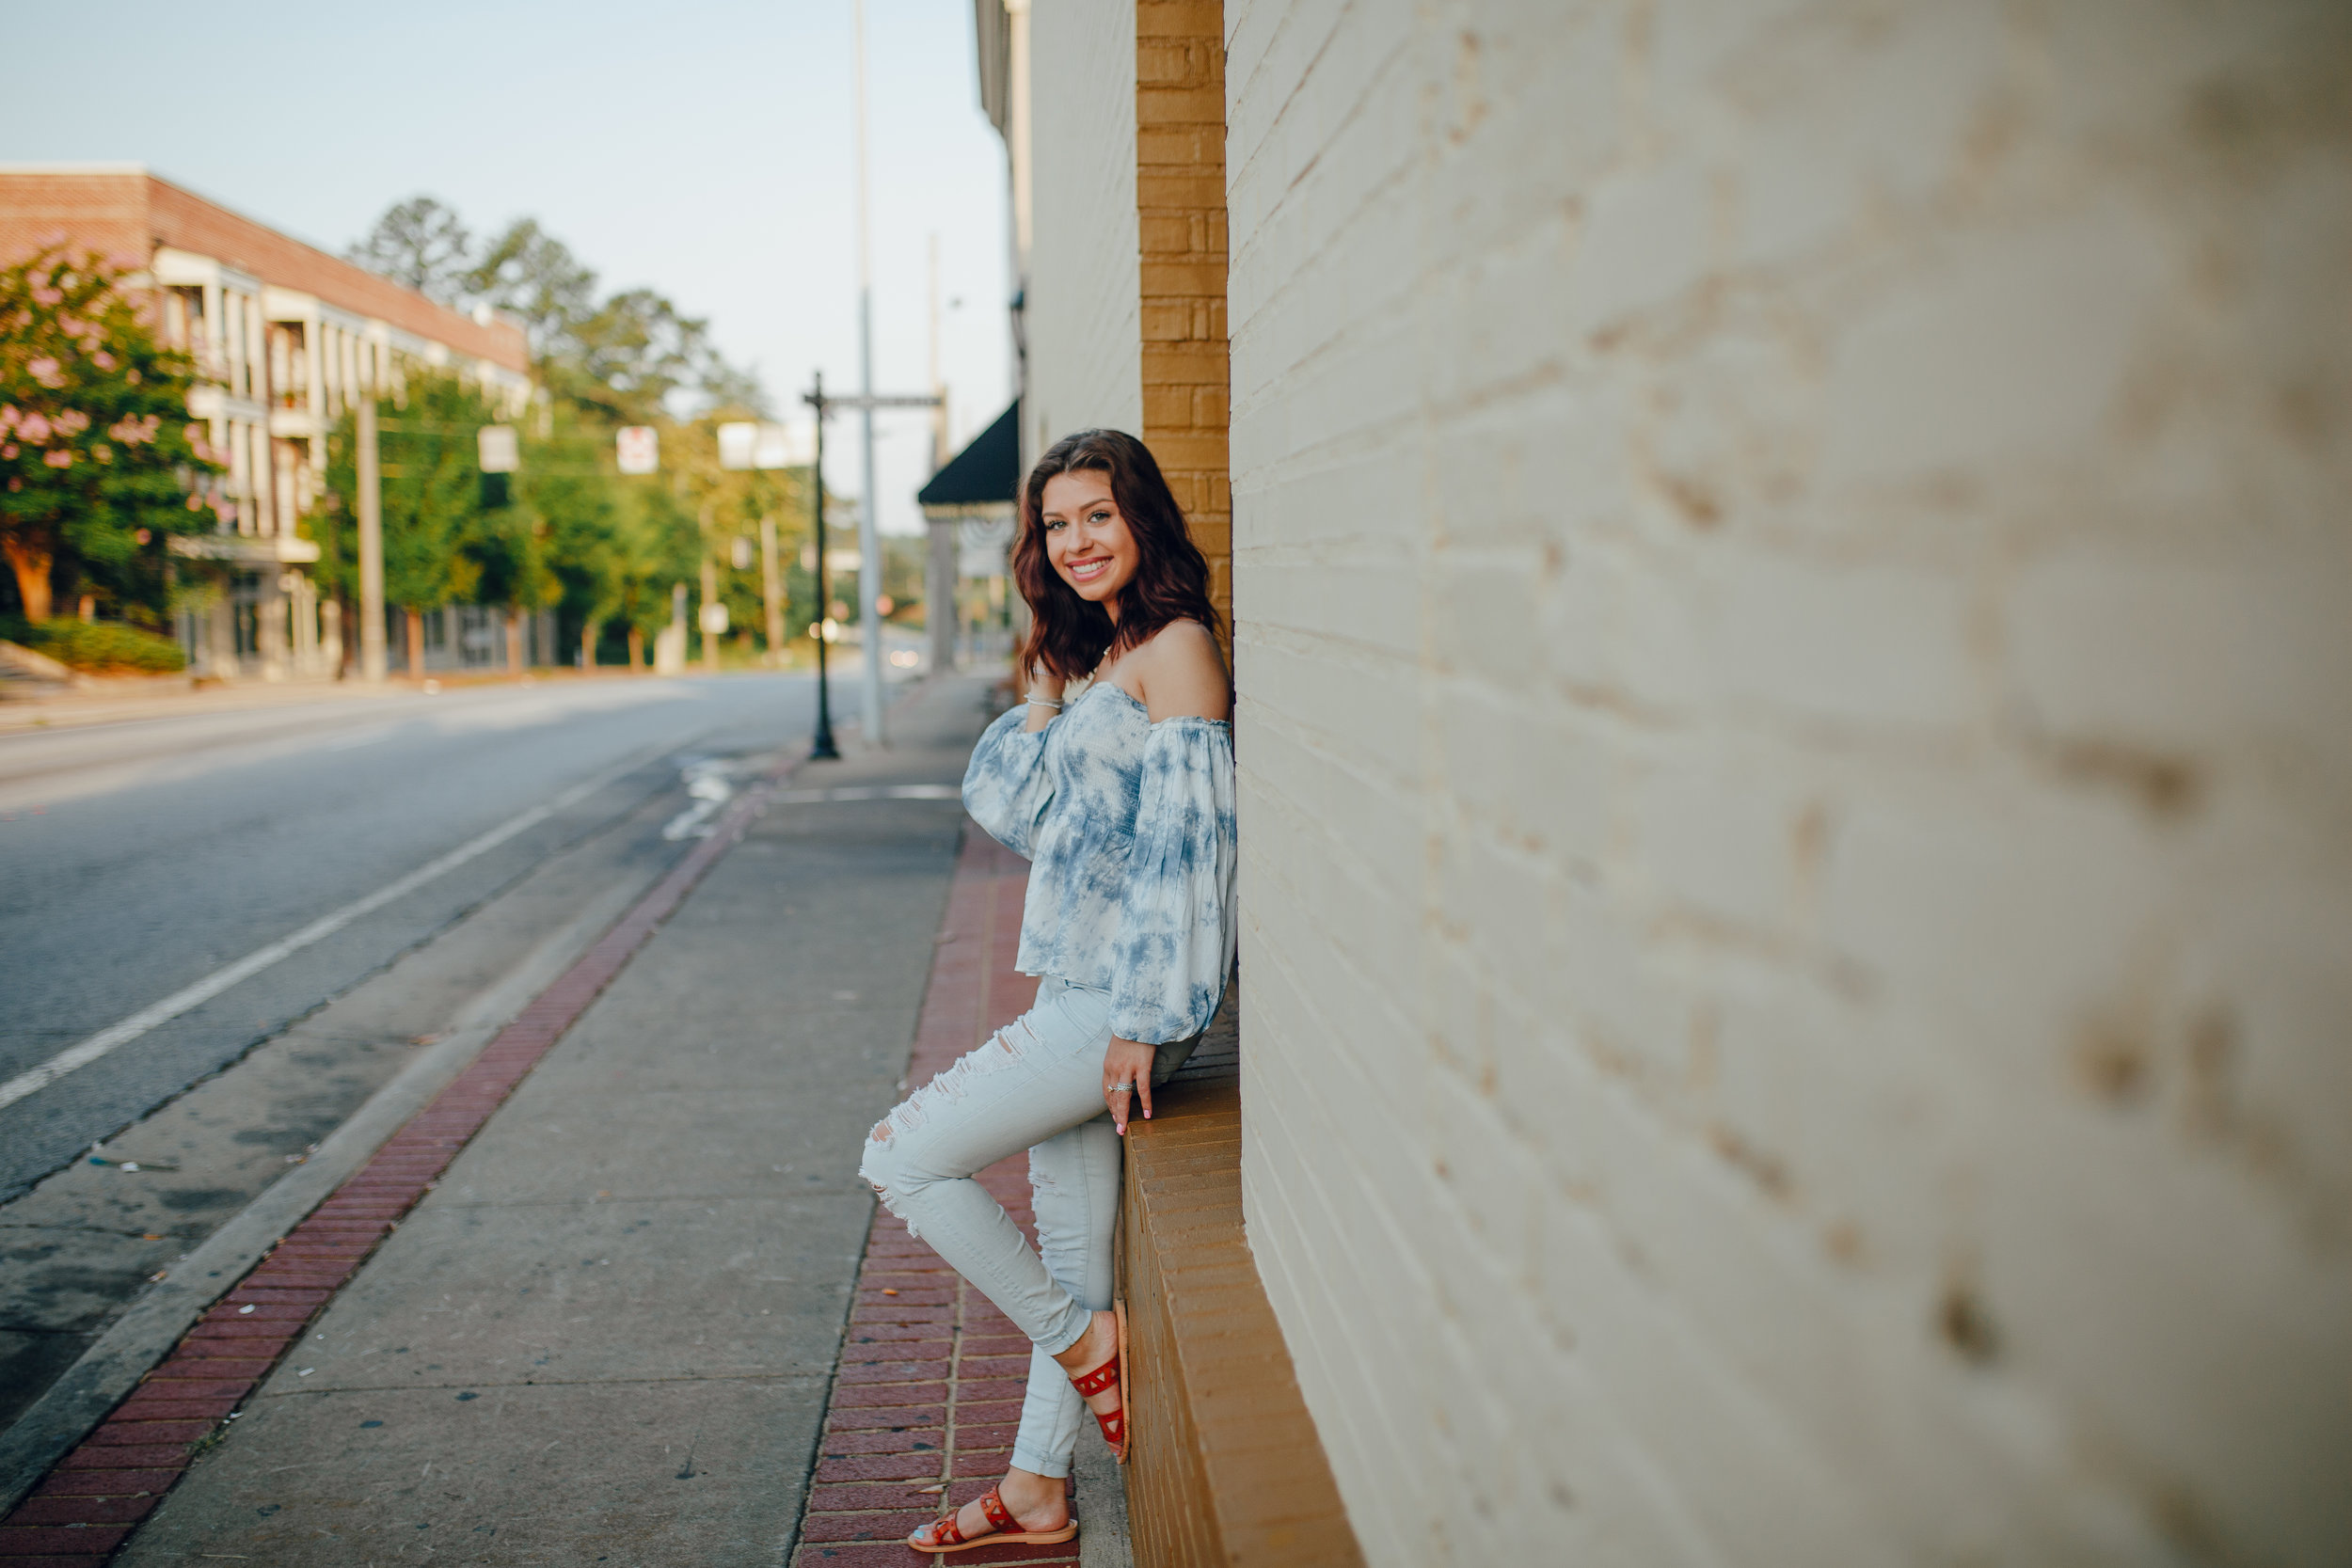 Senior Session in Downtown lawrenceville. Georgia Senior Portrait Photographer